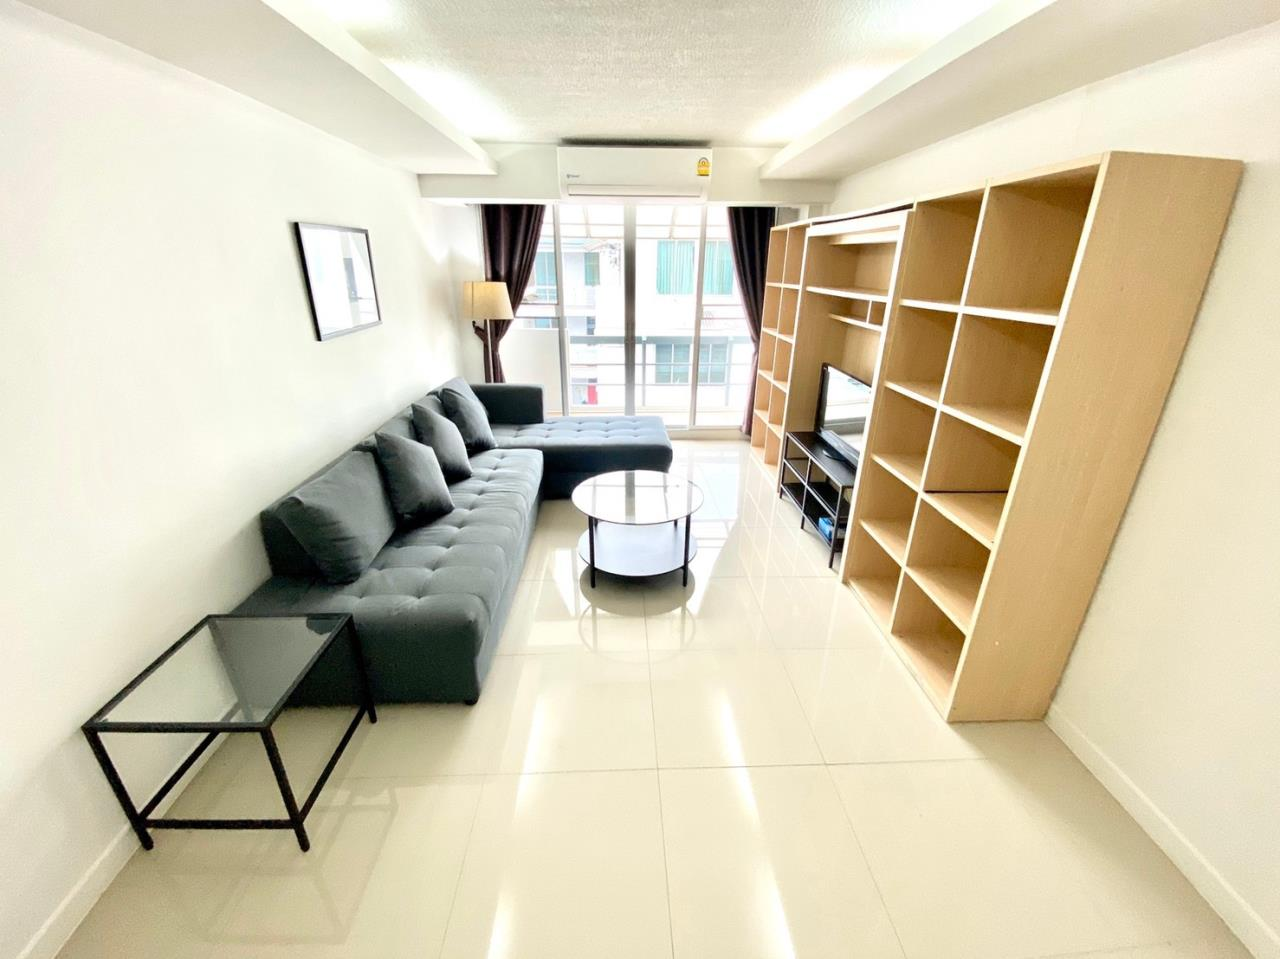 Bestbkkcondos Agency's Waterford 50 2 bedrooms 2 bathrooms 96.8 sqm. 8th Floor for sale 6.582mTHB Rental 28000THB 4